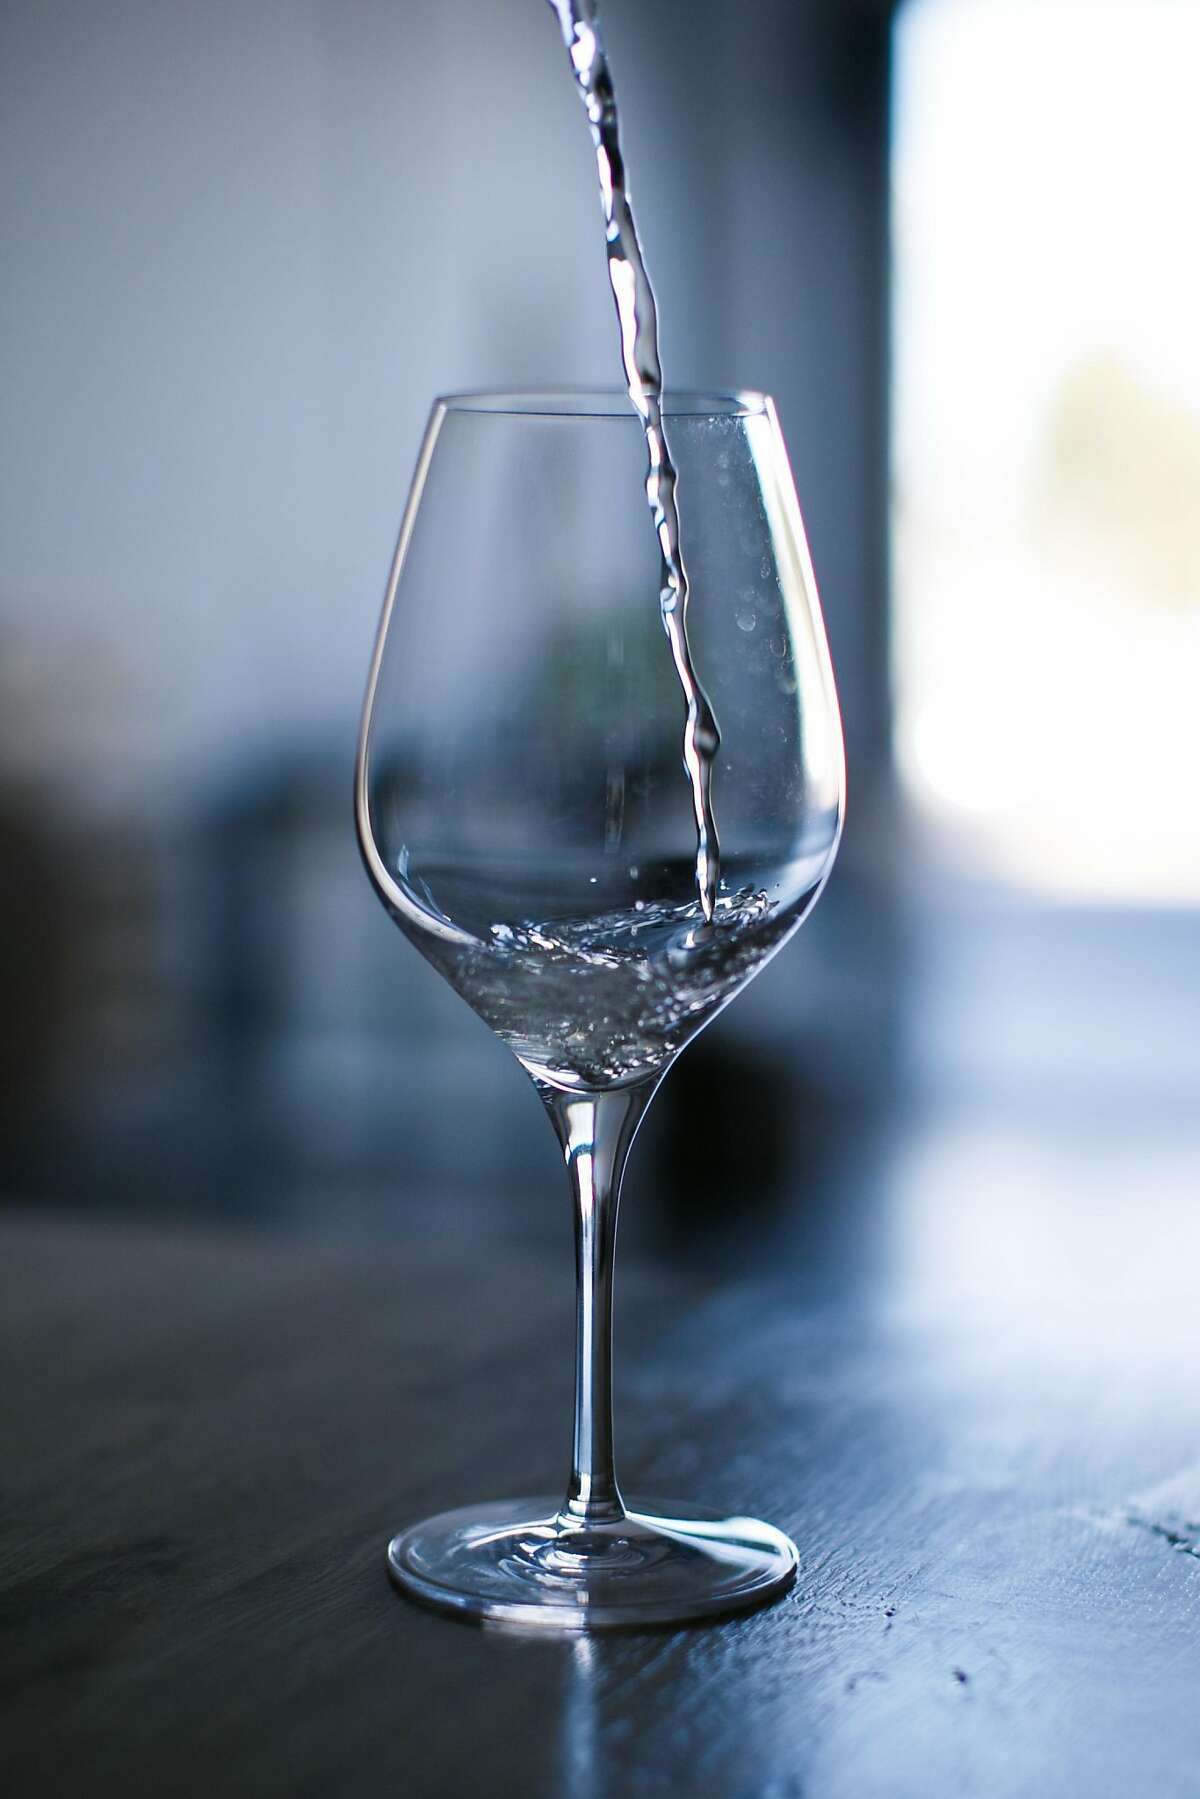 A Moscato prototype poured into a glass at Ava Winery's lab in San Francisco.